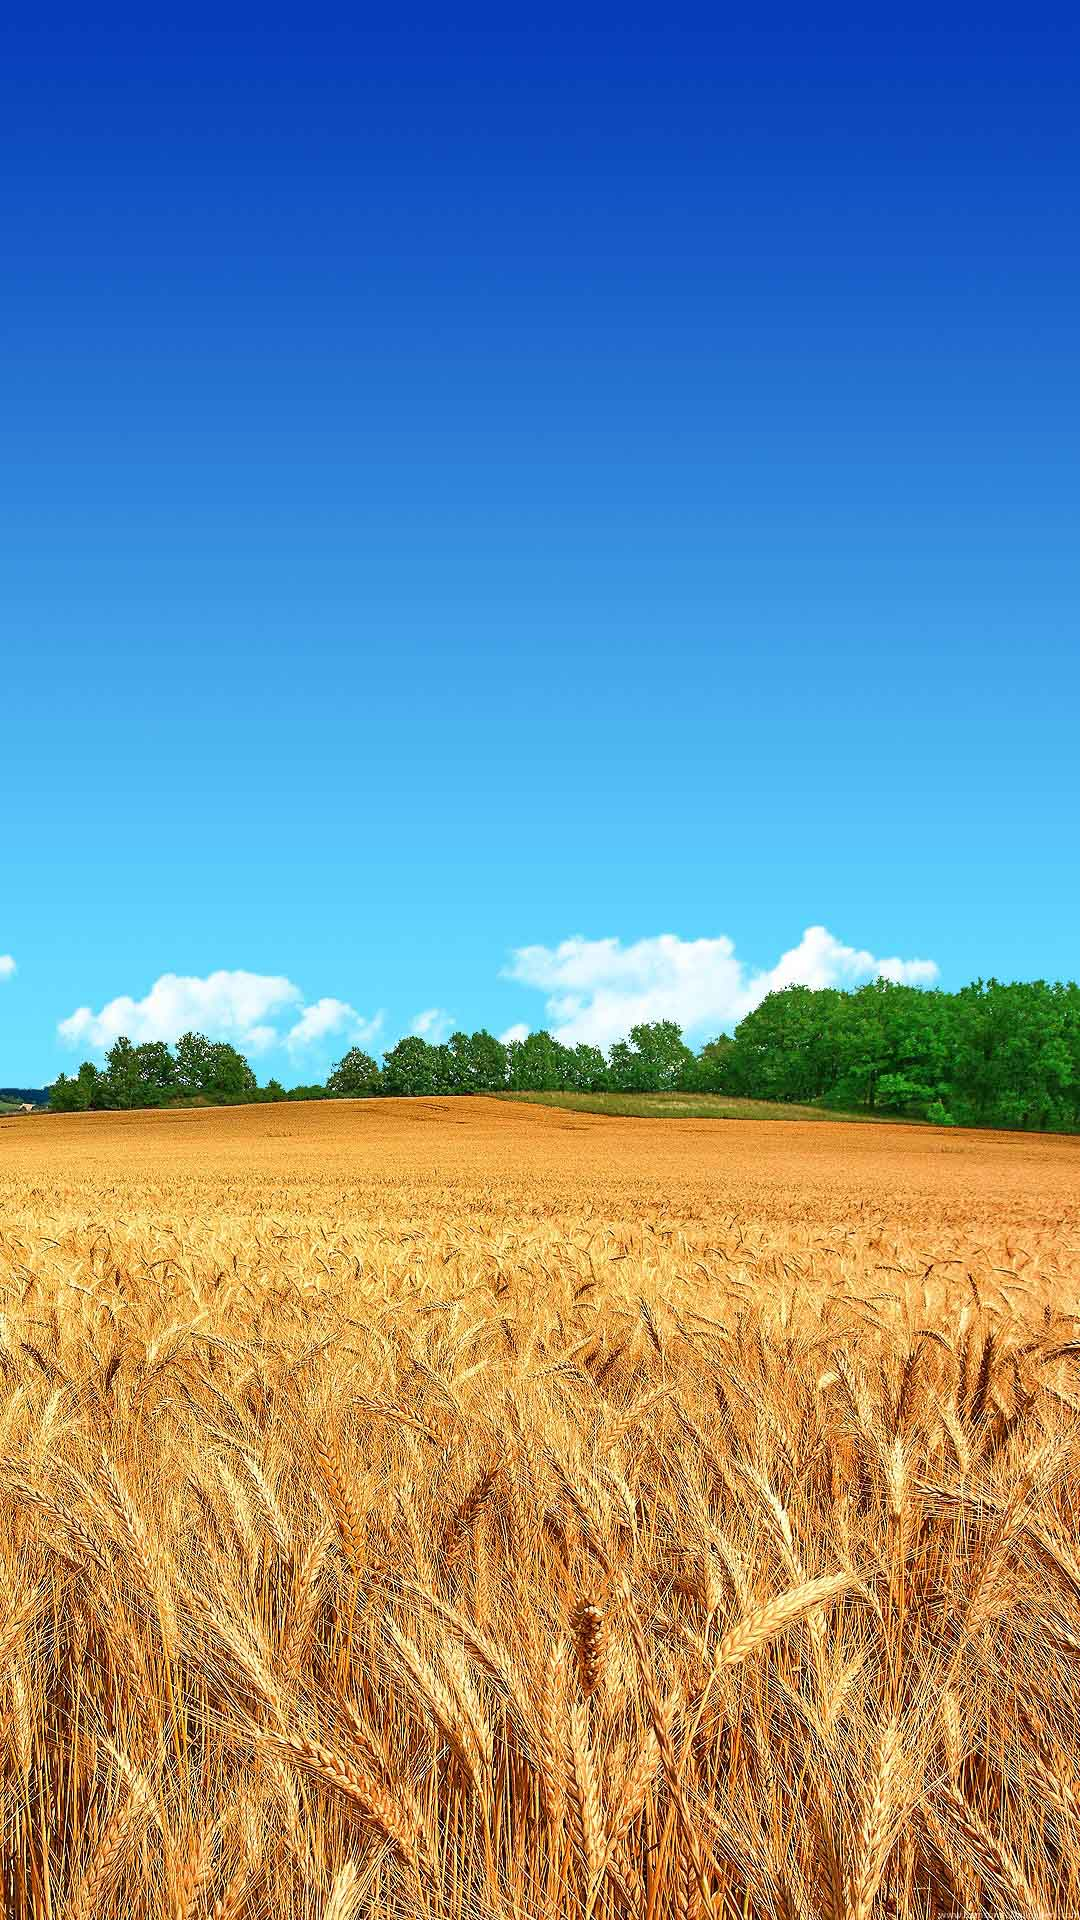 Samsung Galaxy J7 Wallpapers: Farmer Fields Android